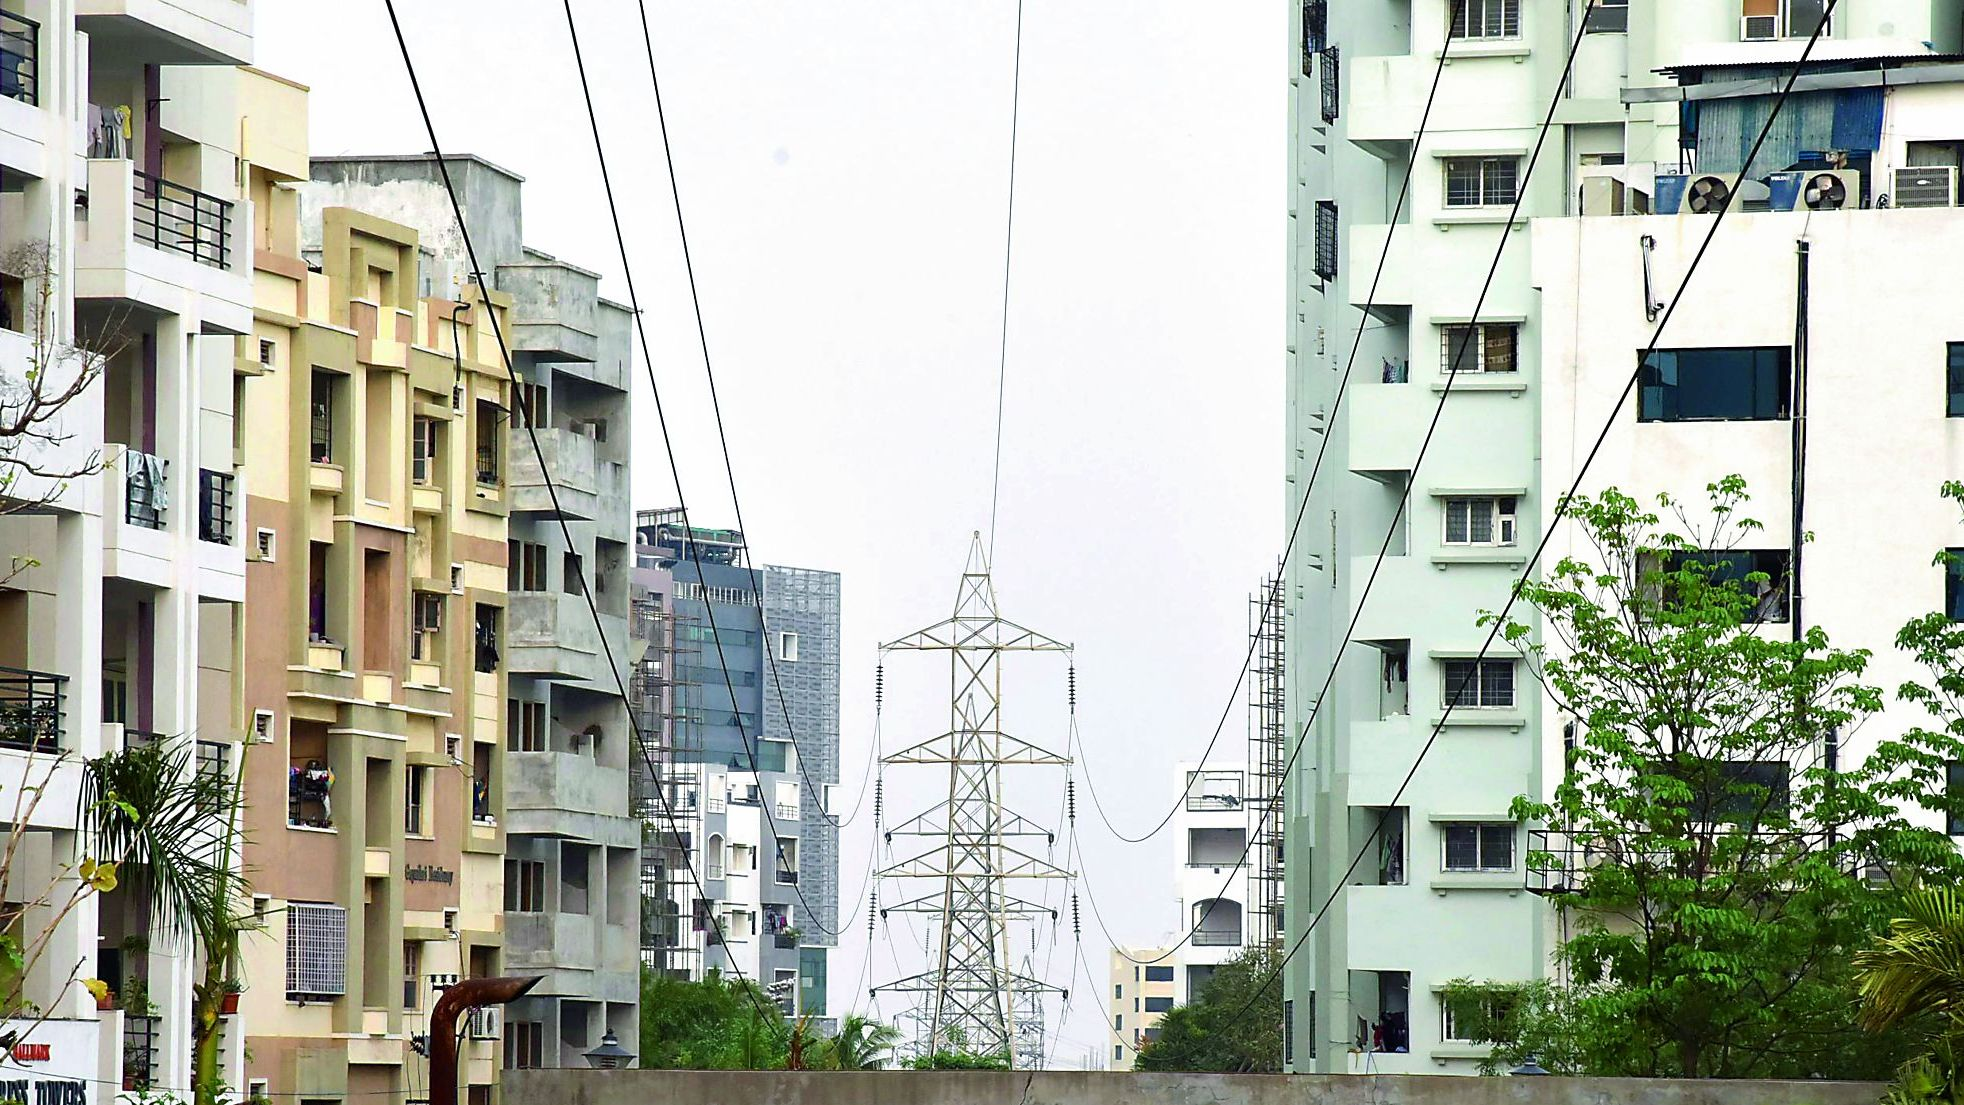 Danger zone: Live electricity wires endanger citizens lives in ...